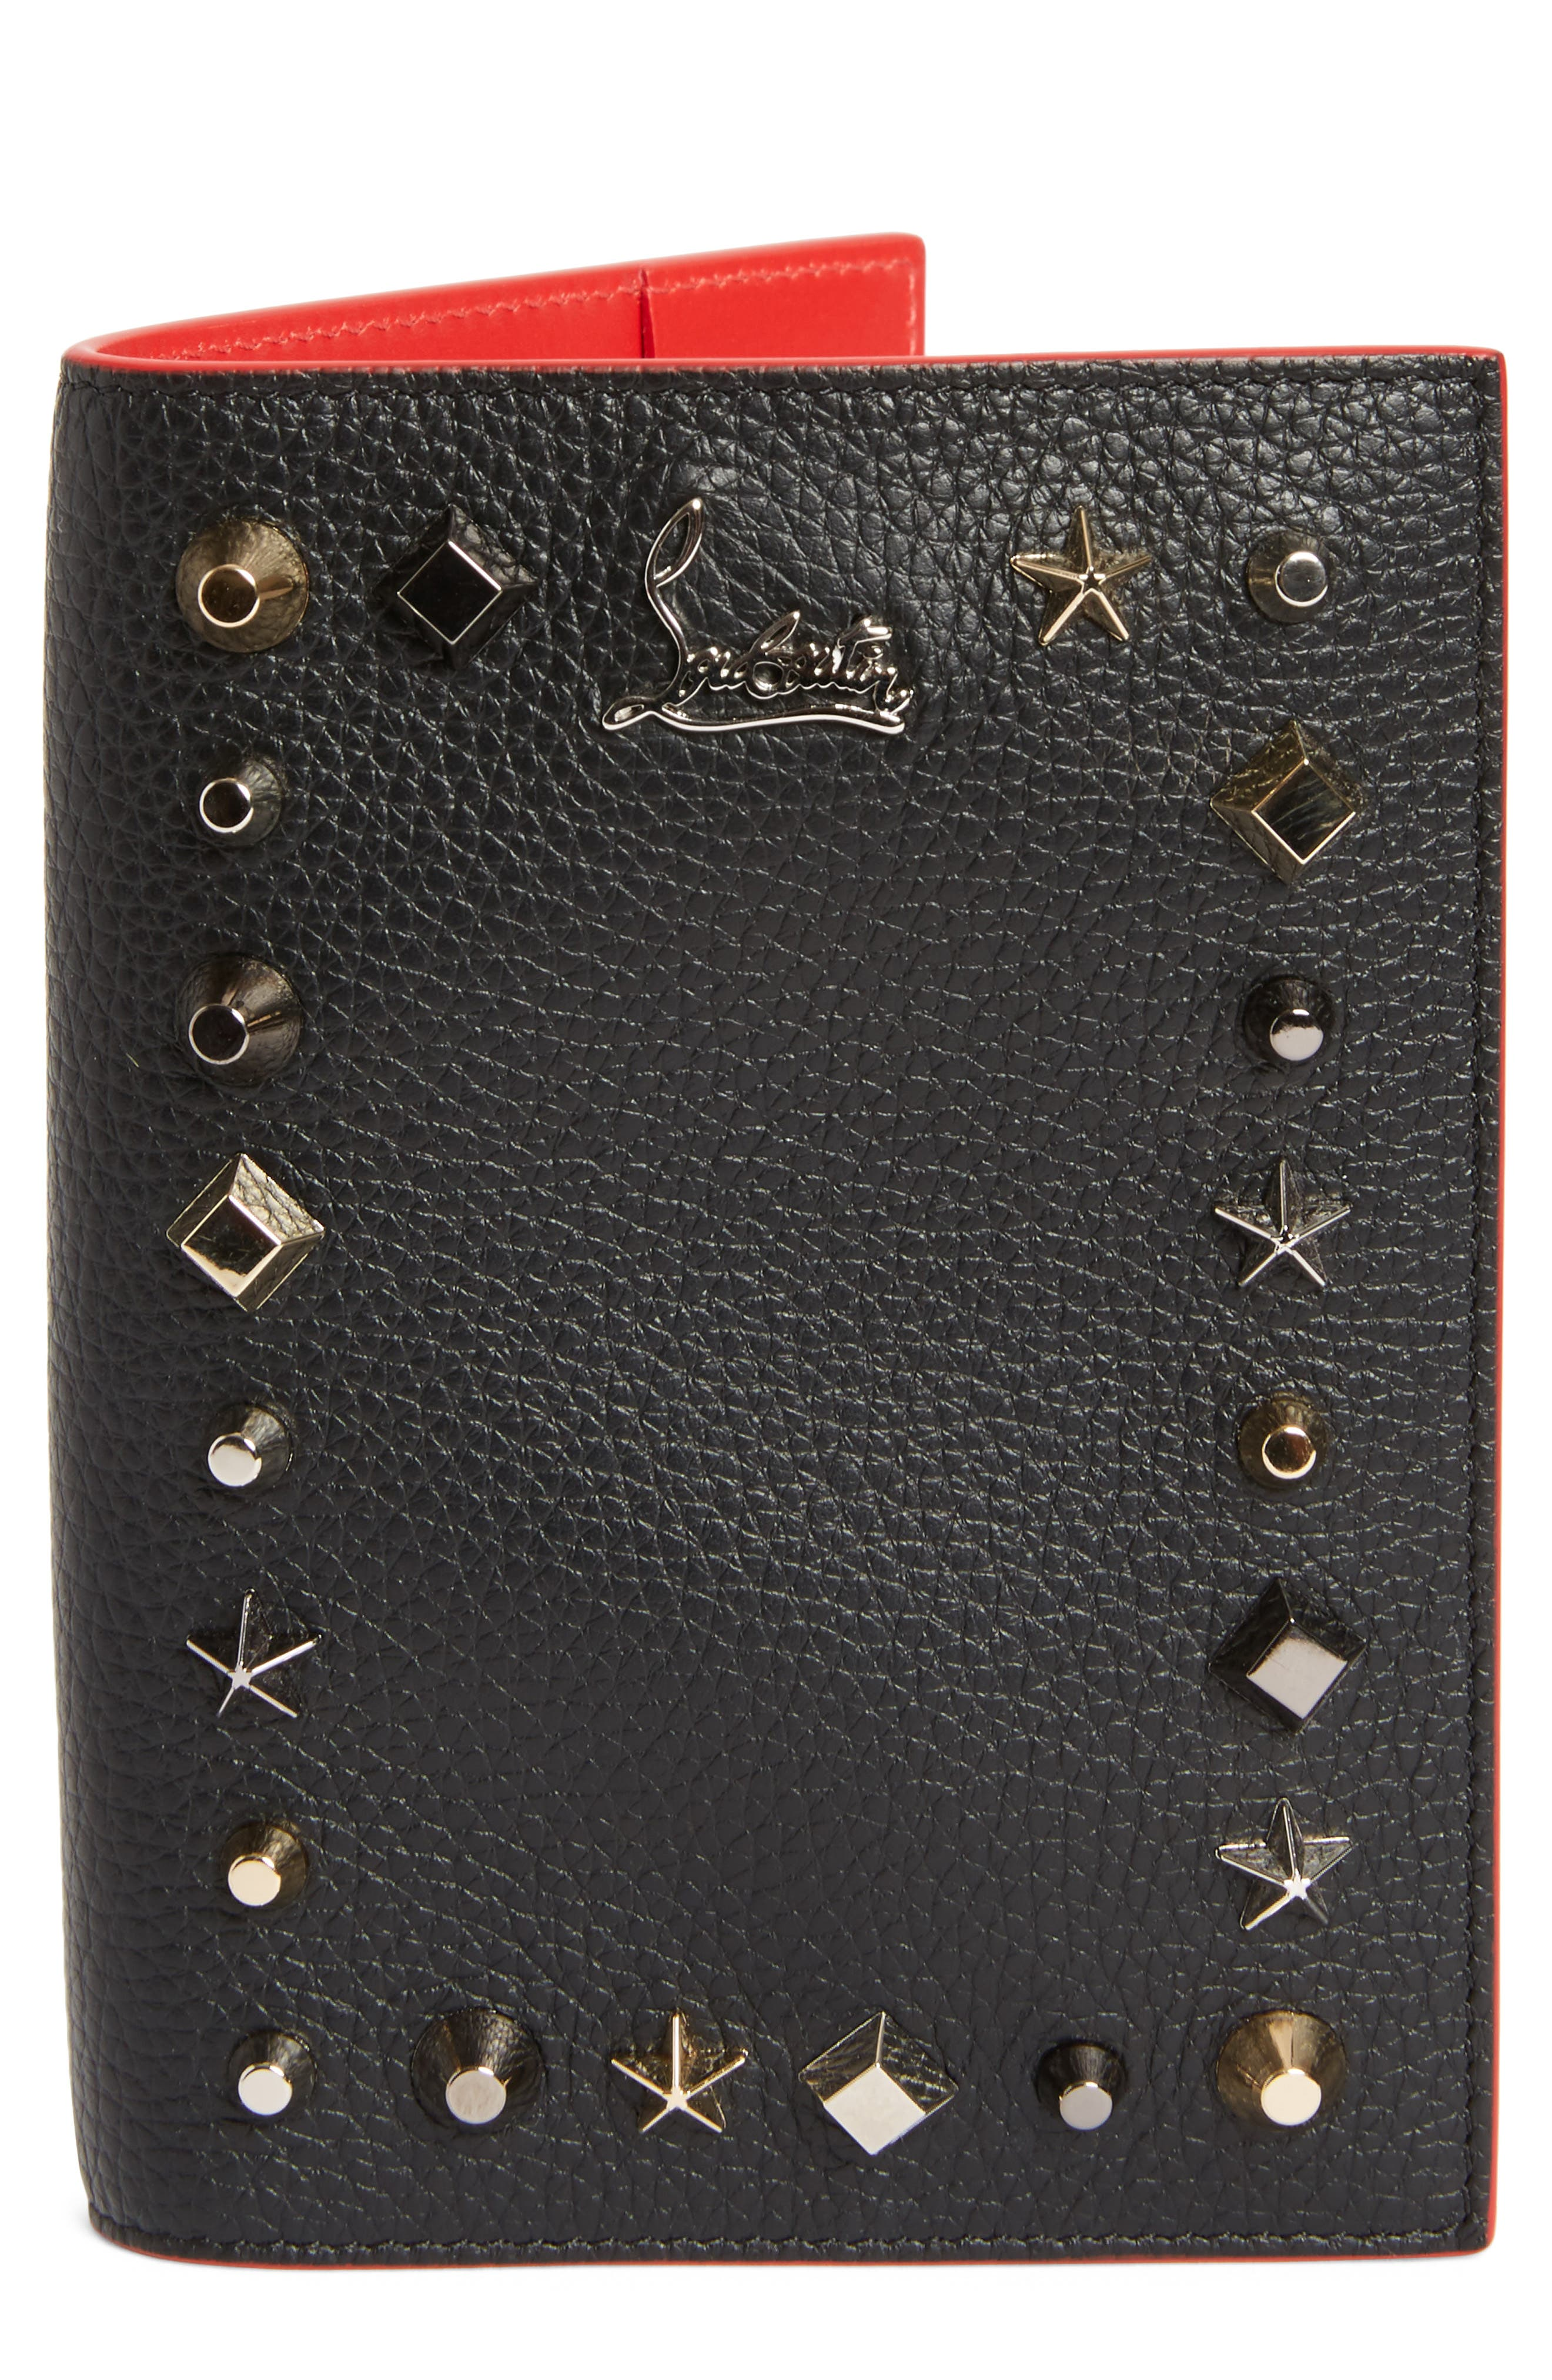 Christian Louboutin Loubipass Empire Studded Leather Passport Case